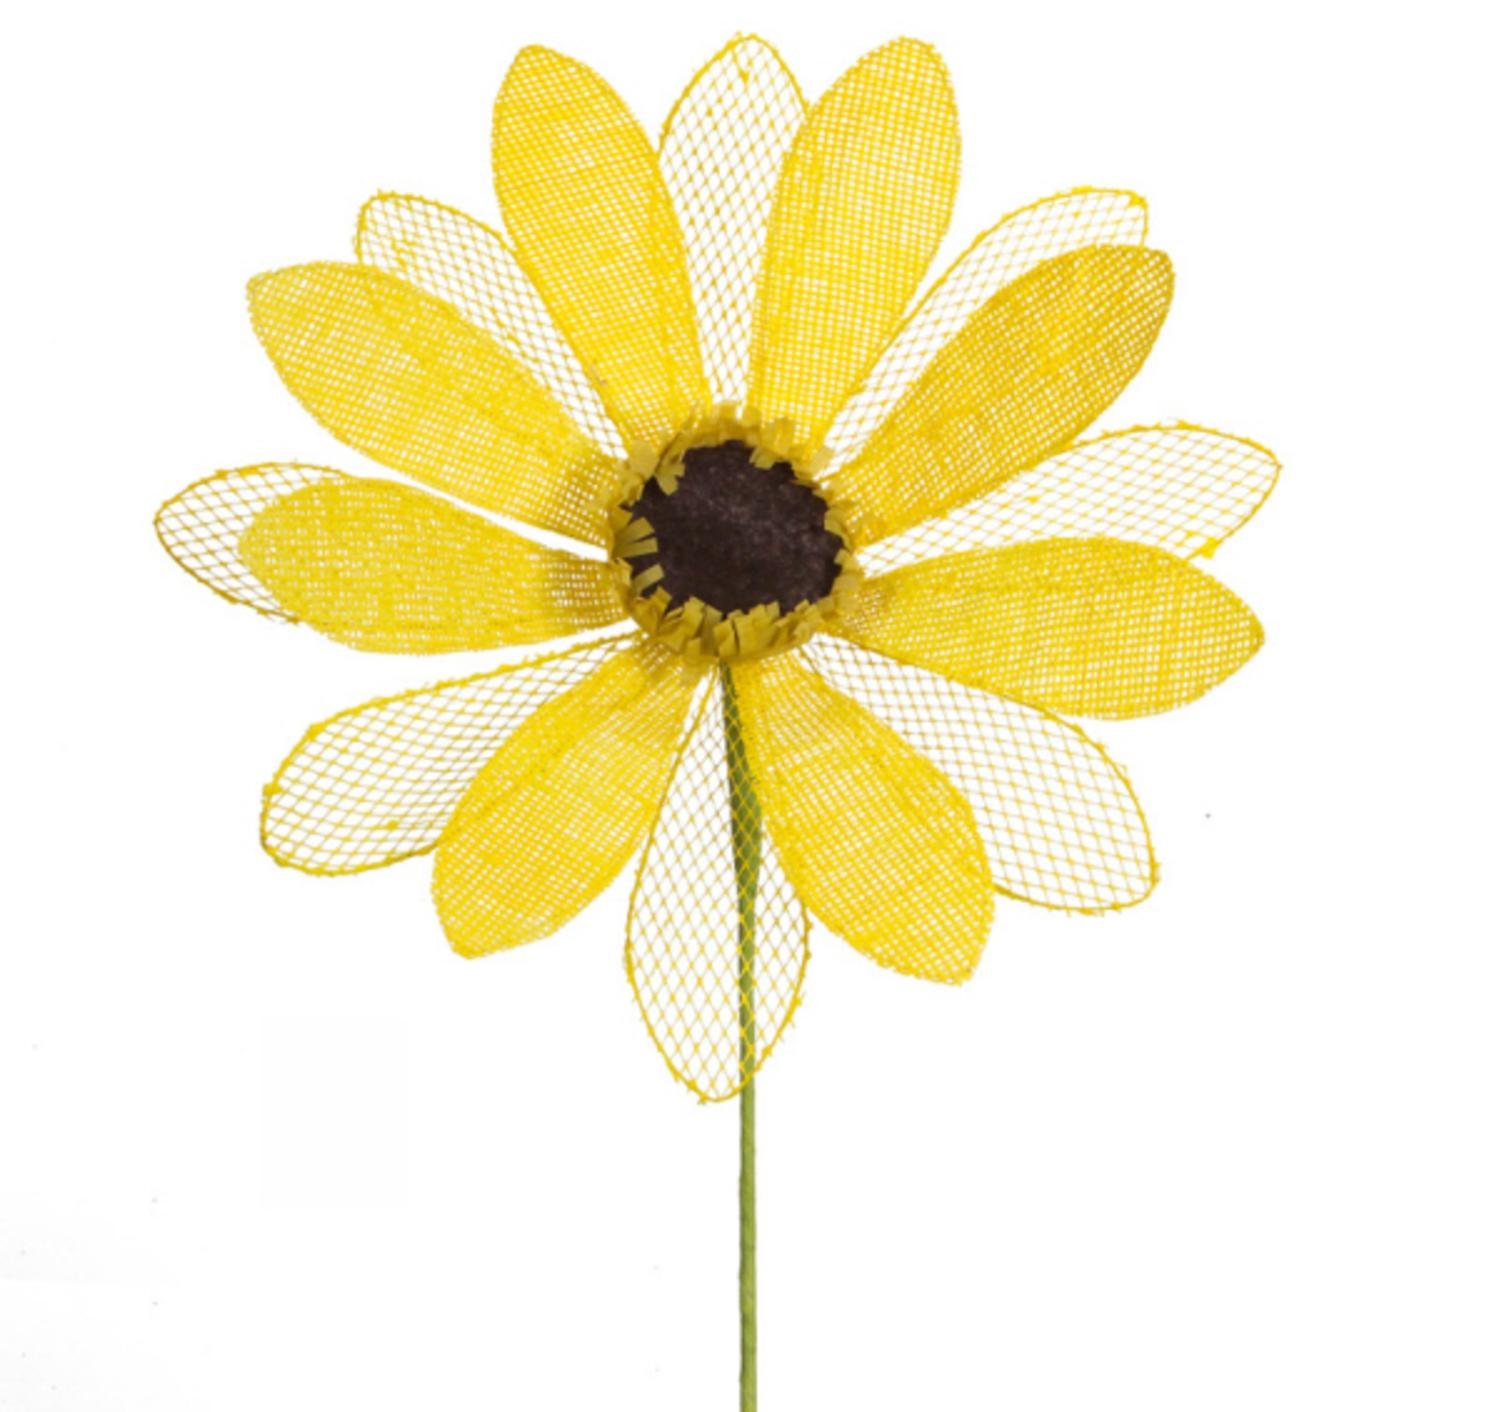 Pack of 6 Yellow Mesh Decorative Artificial Sunflower Stems 23""